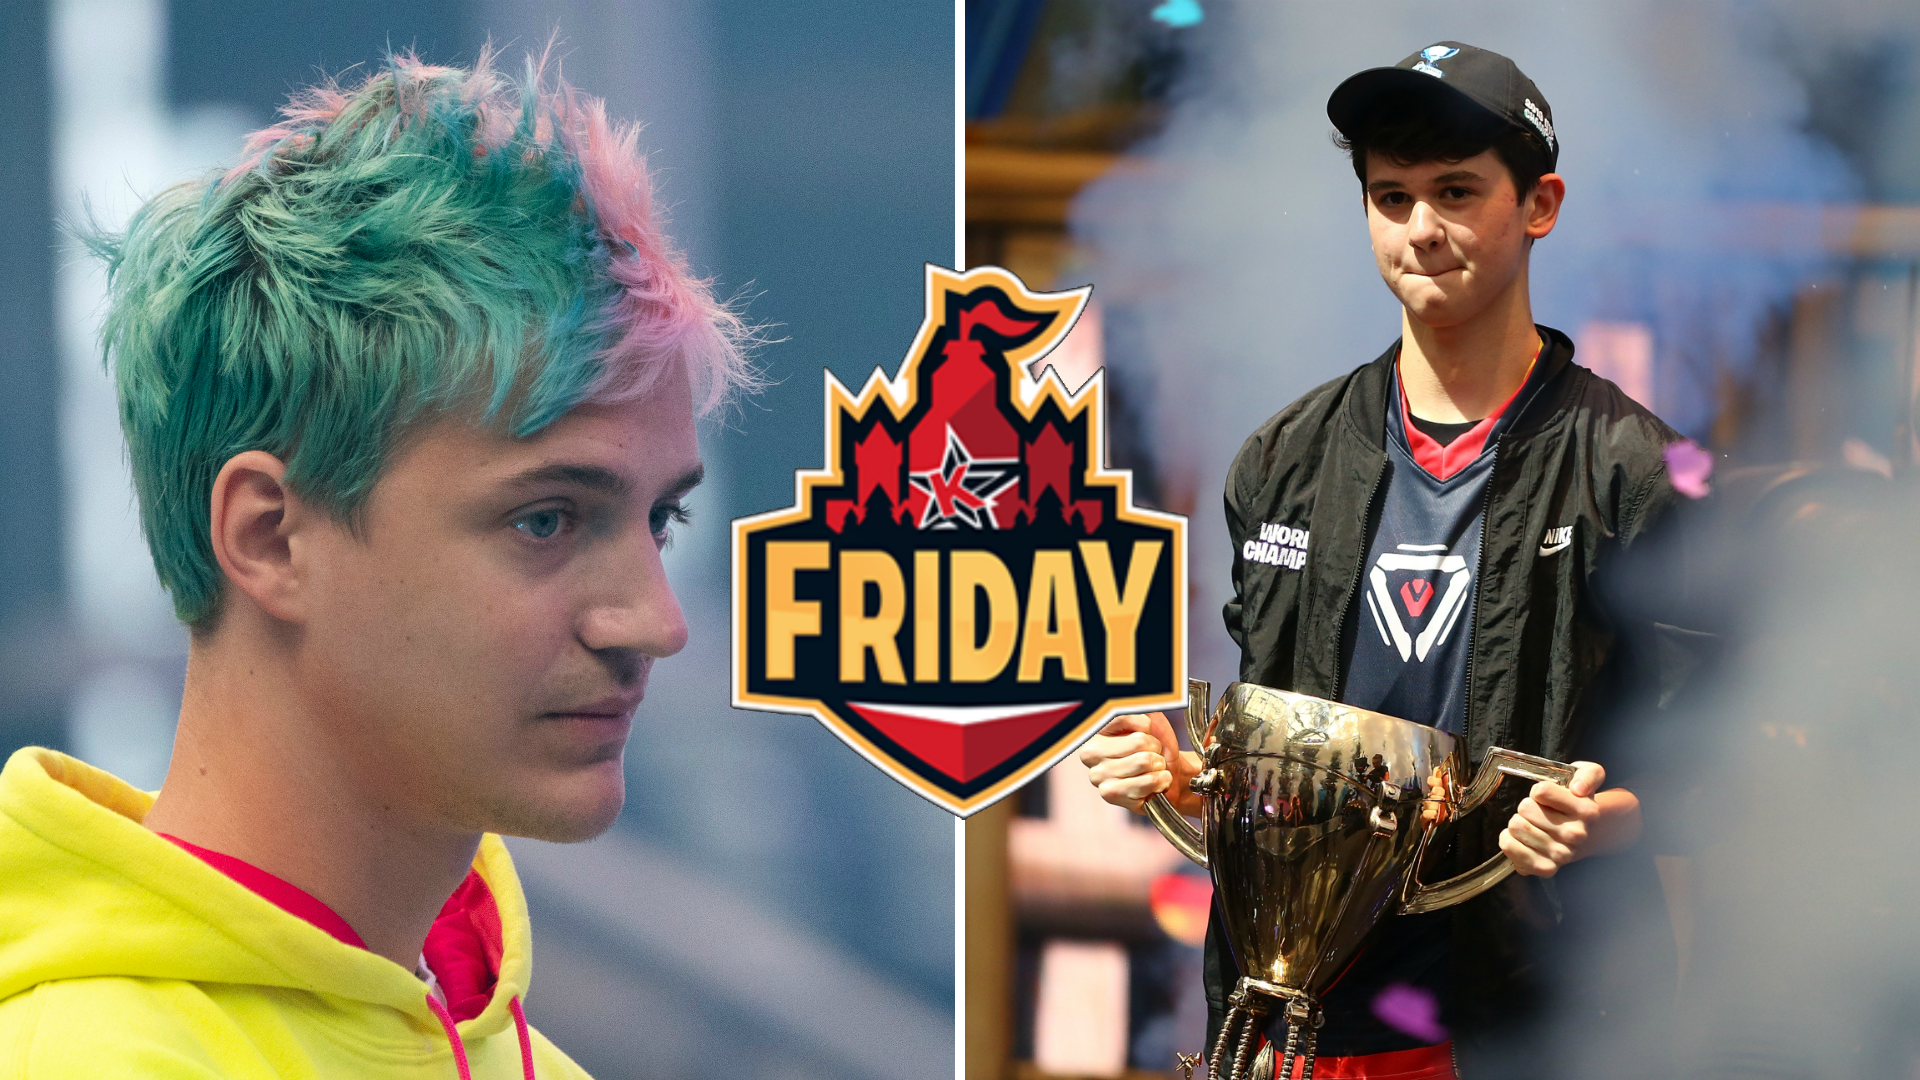 Friday Fortnite Barcket Friday Fortnite Bracket Live Results As Ninja And Bugha Team Up For Week 7 Sporting News